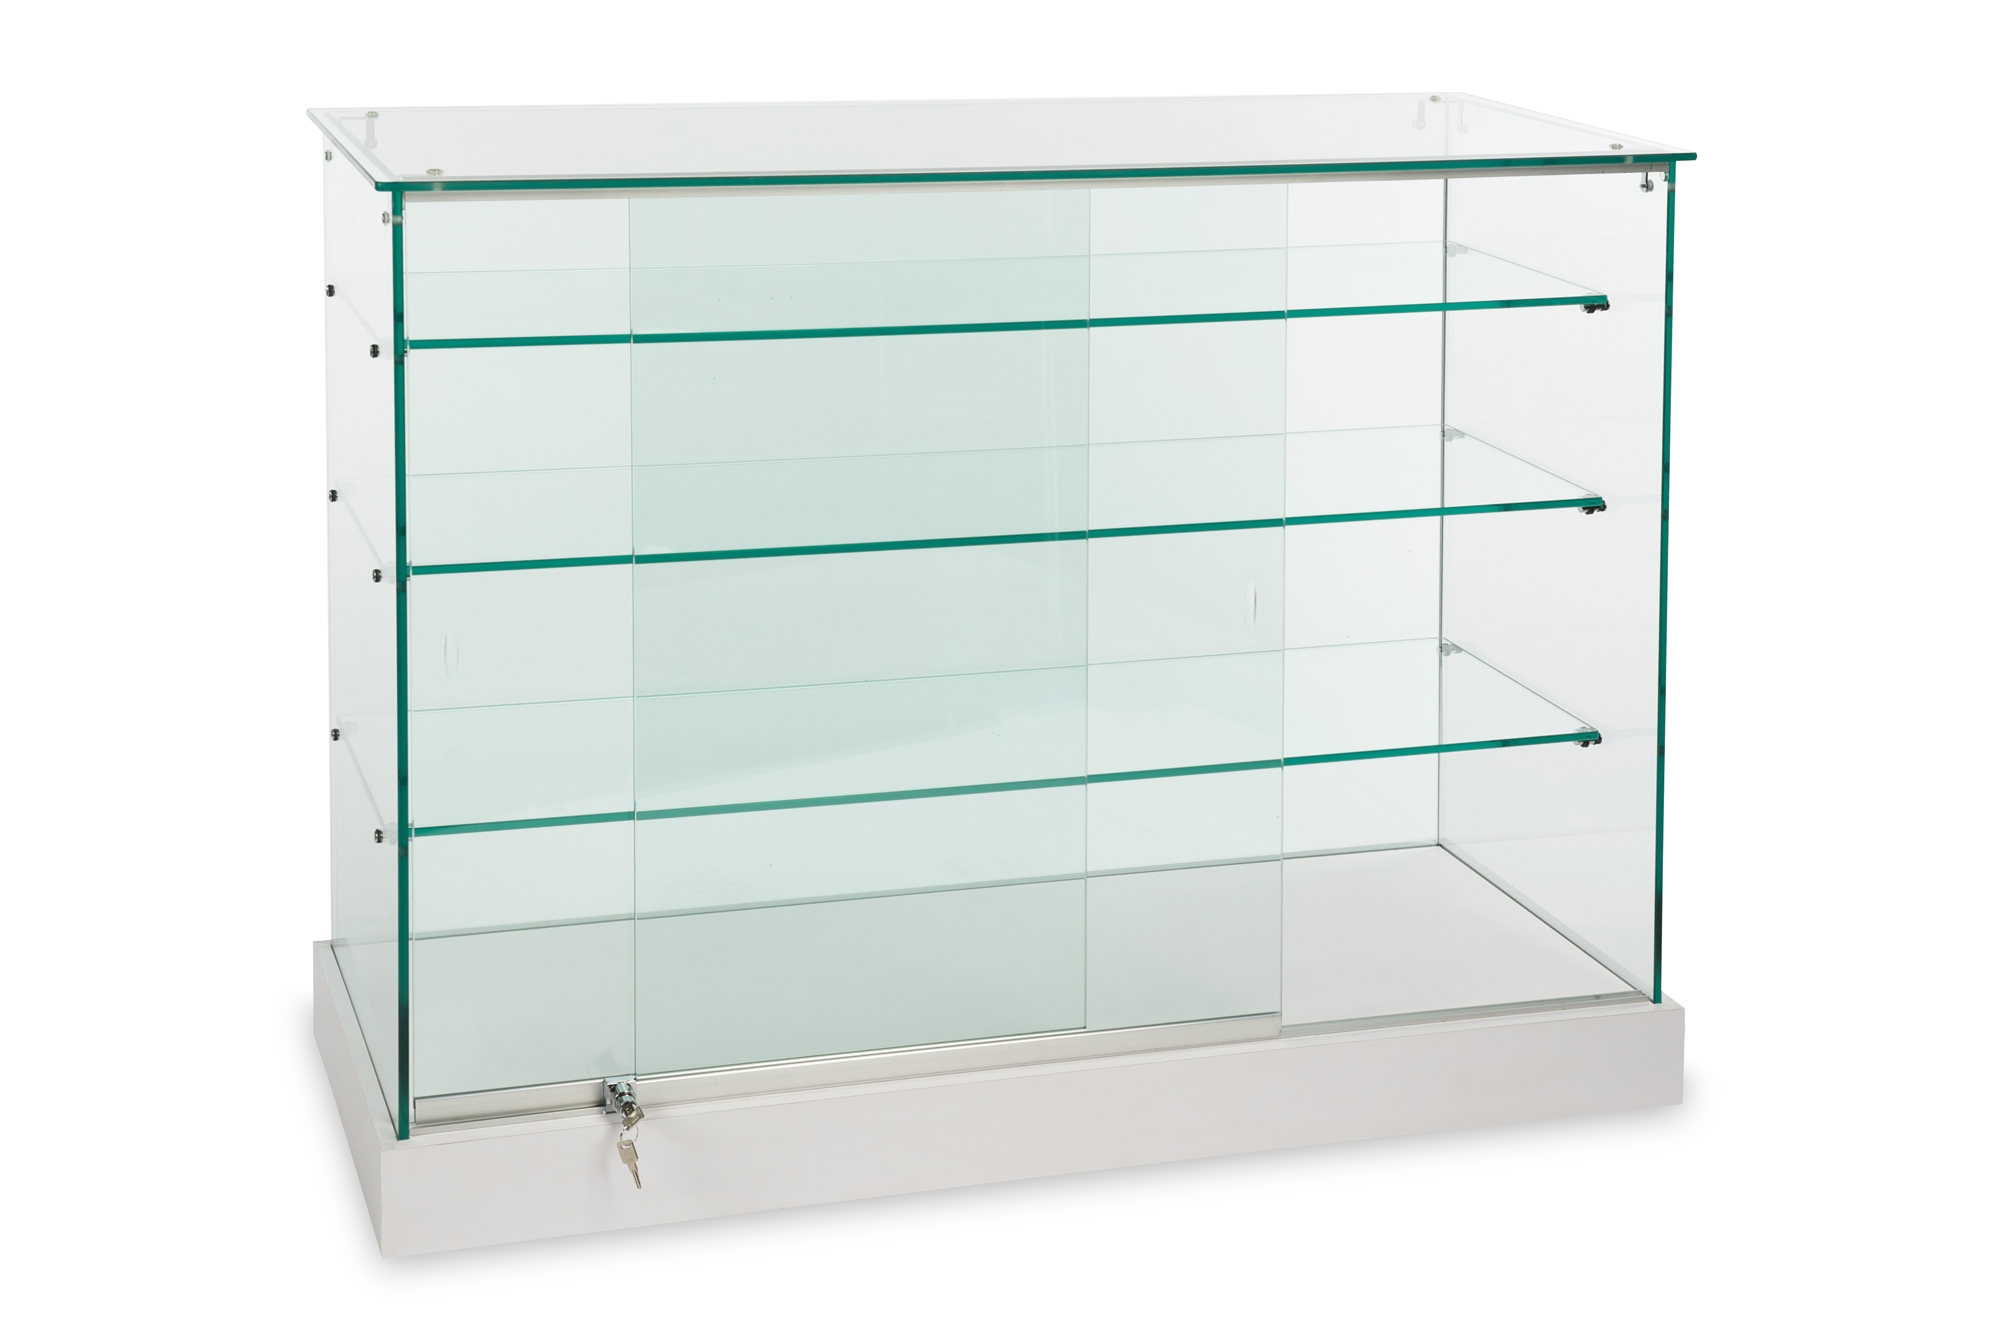 Display Cases Showcases Free 3d Planning Showcasesource Inside Wall Mounted Glass Display Shelves (View 11 of 15)